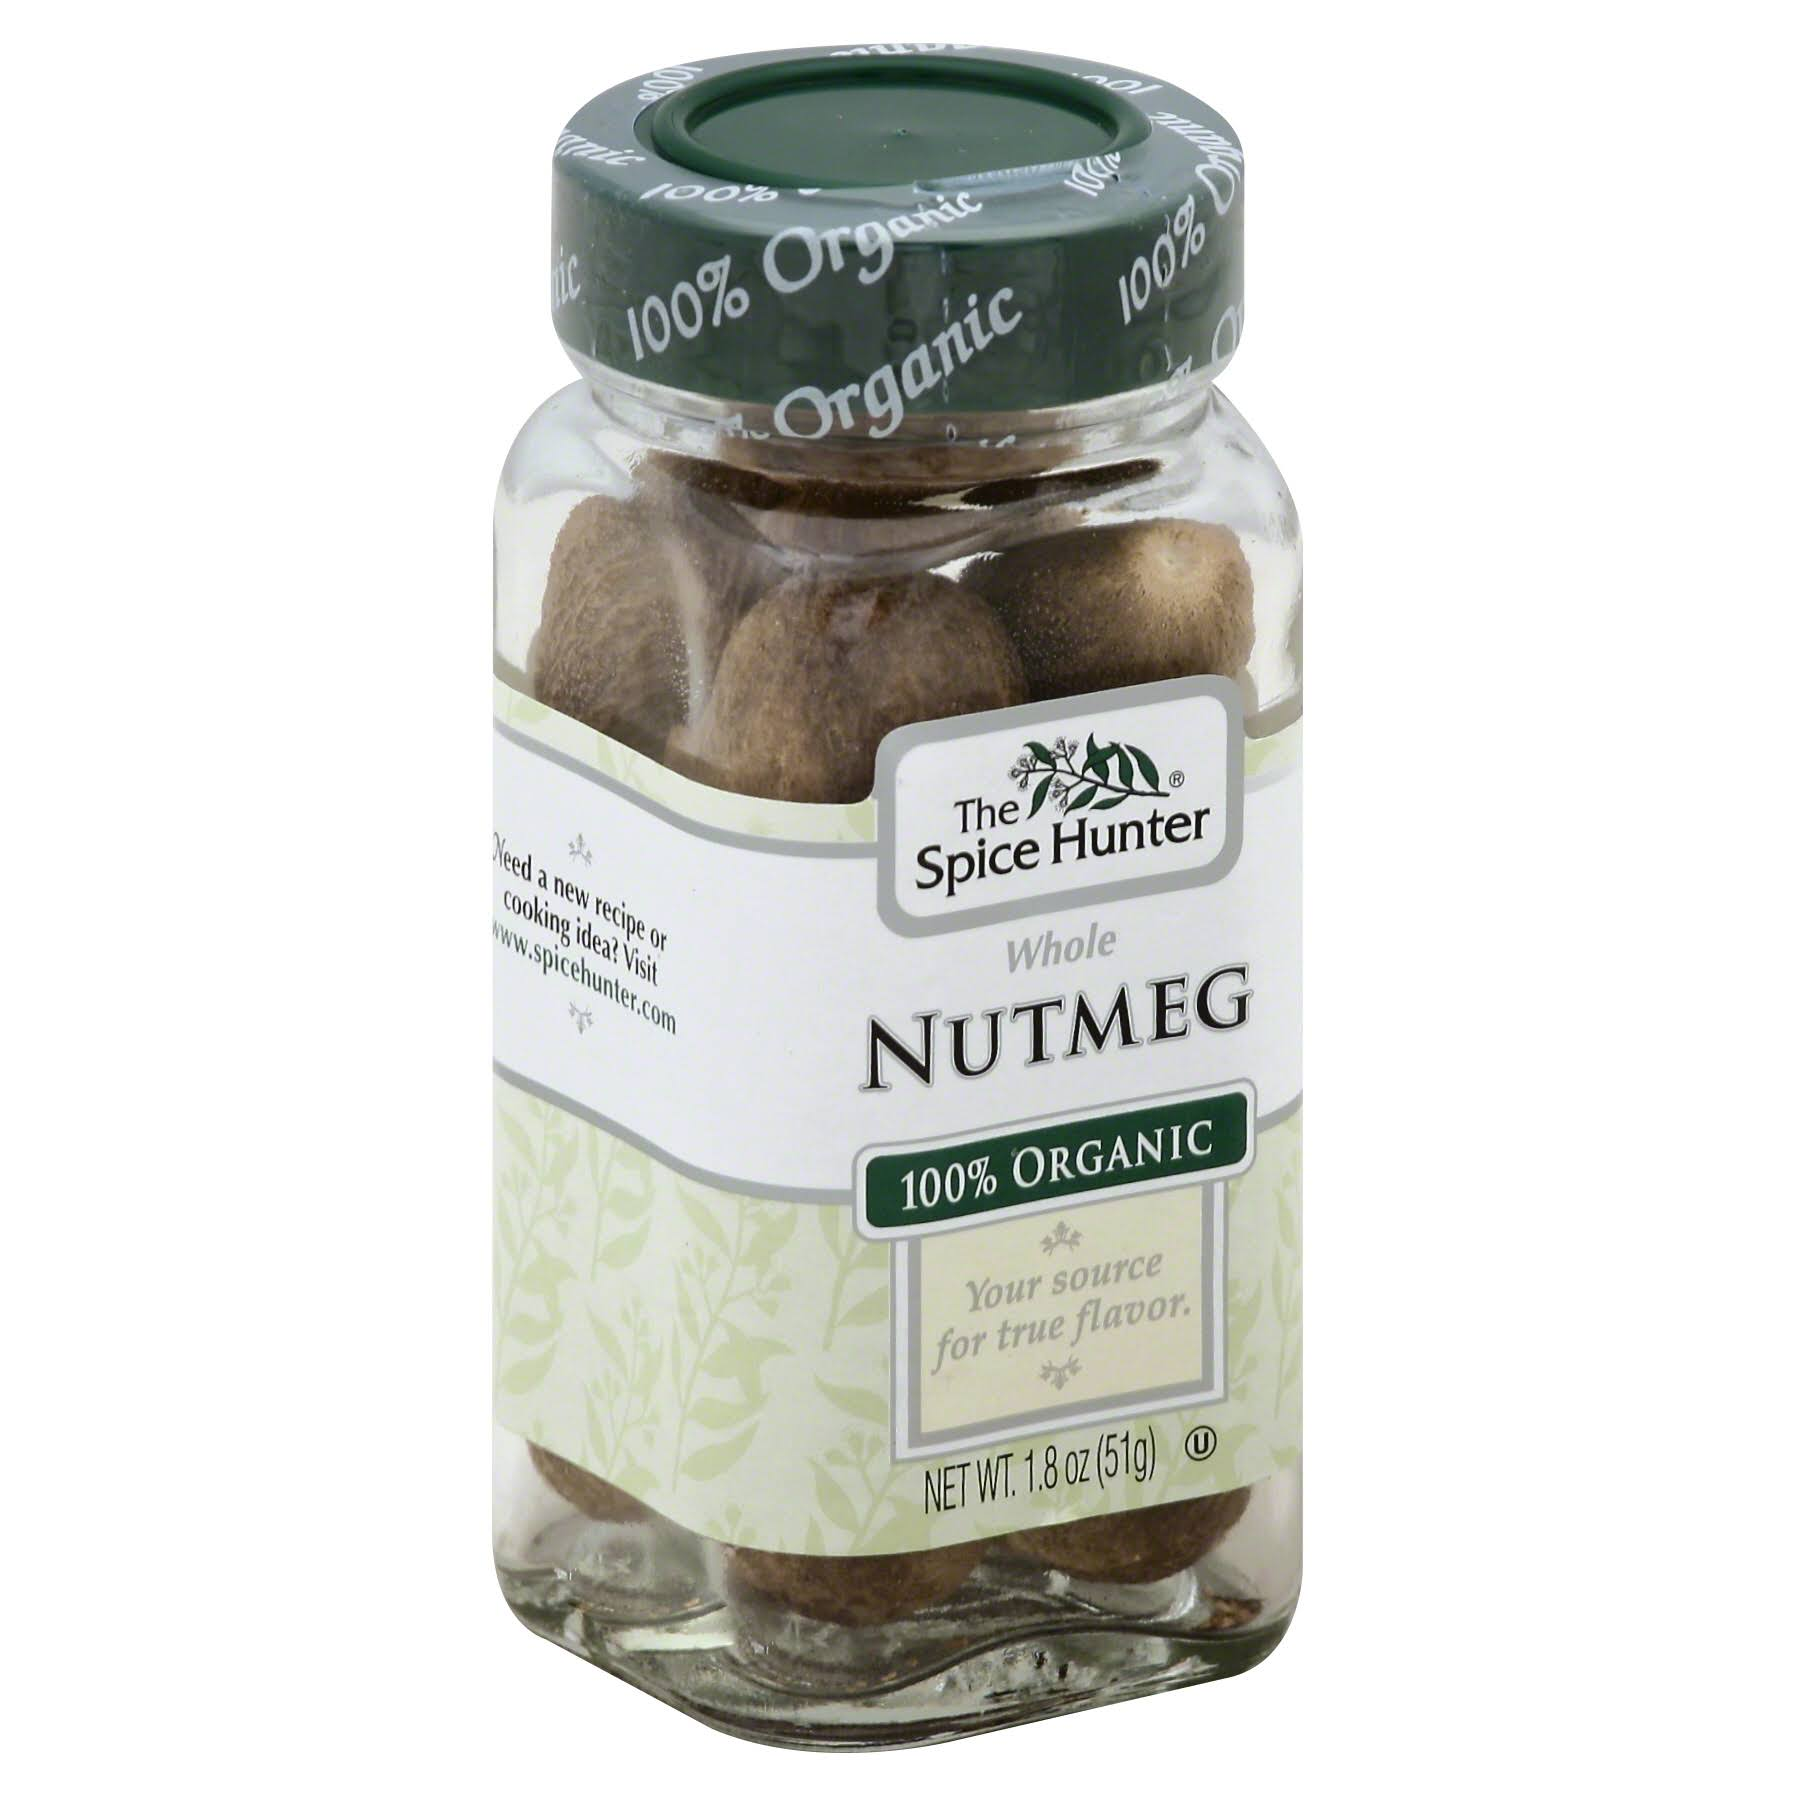 Spice Hunter Nutmeg, Whole, 100% Organic - 1.8 oz